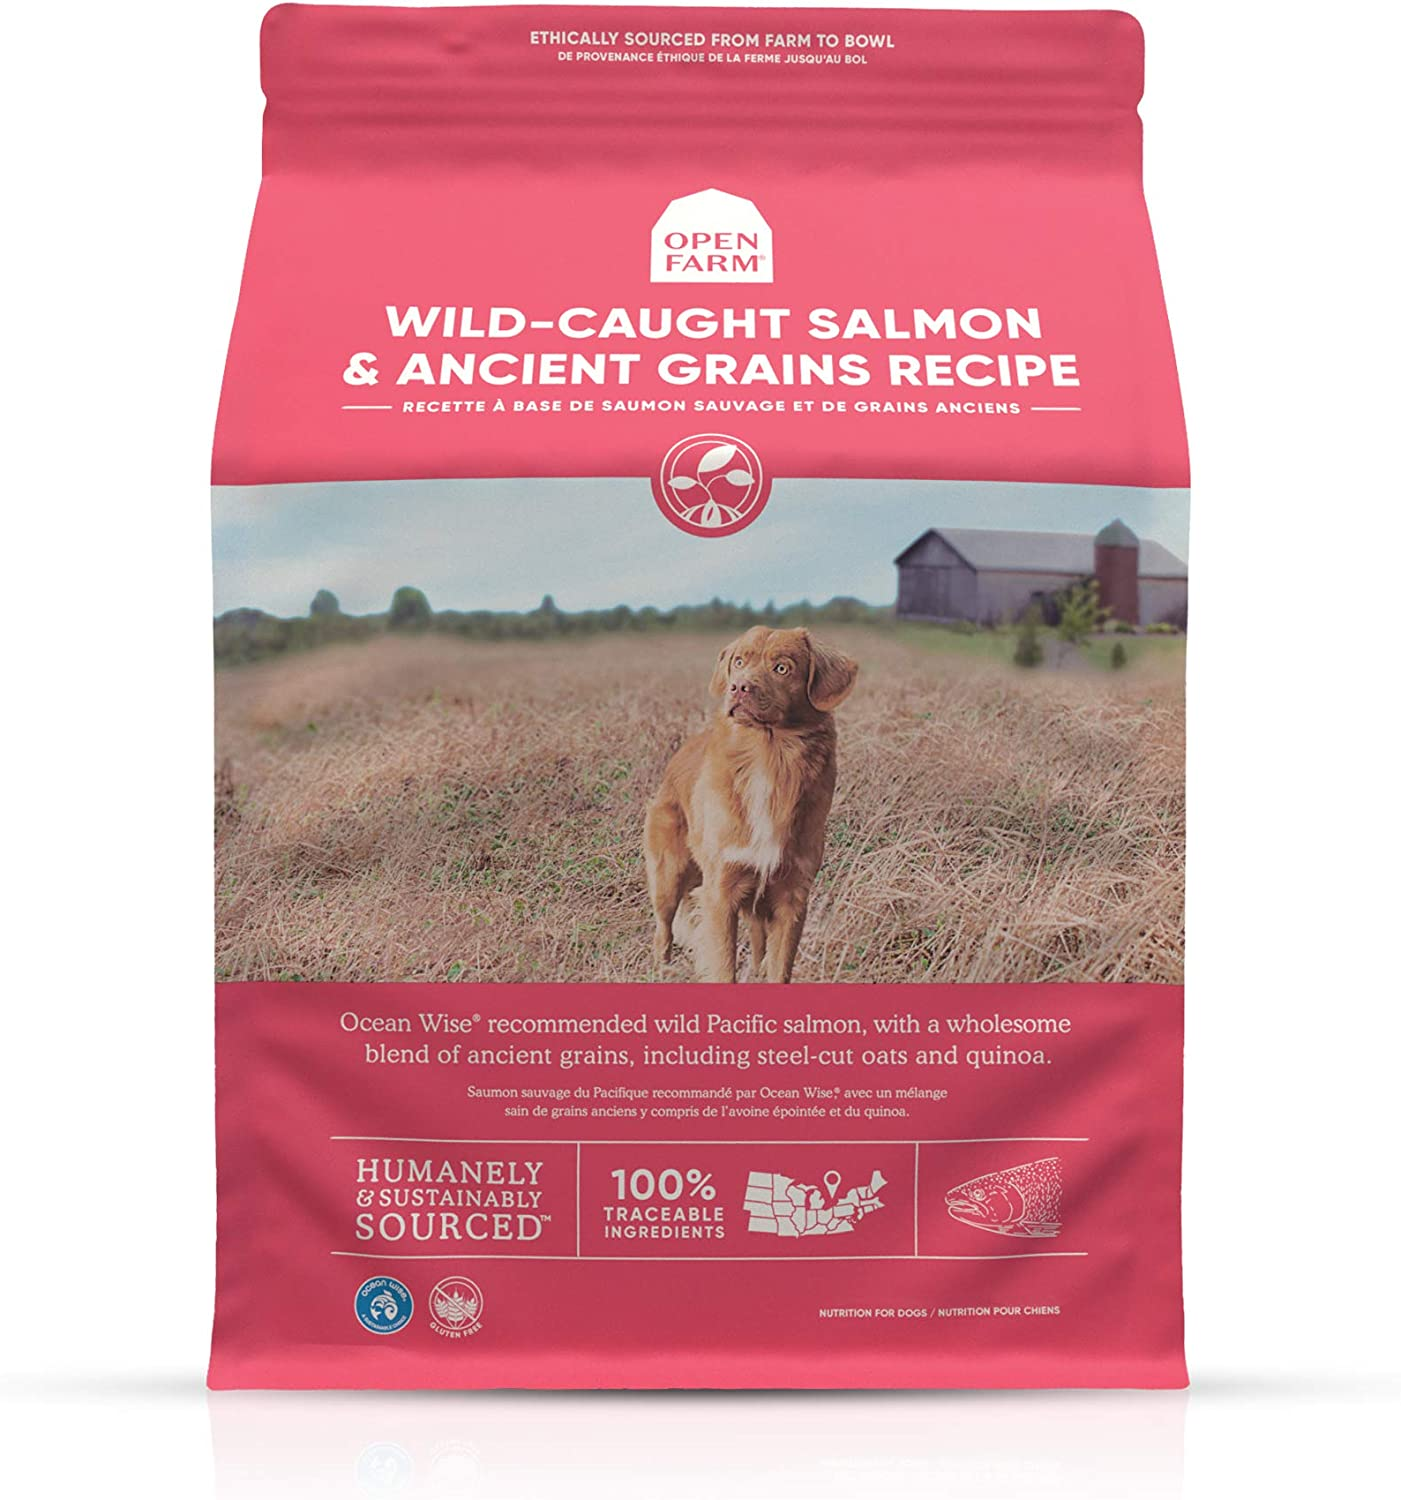 Open Farm Wild-Caught Salmon & Ancient Grains Dry Dog Food, Sustainably Fished Salmon Recipe with Wholesome Grains and No Artificial Flavors or Preservatives, 4 lbs